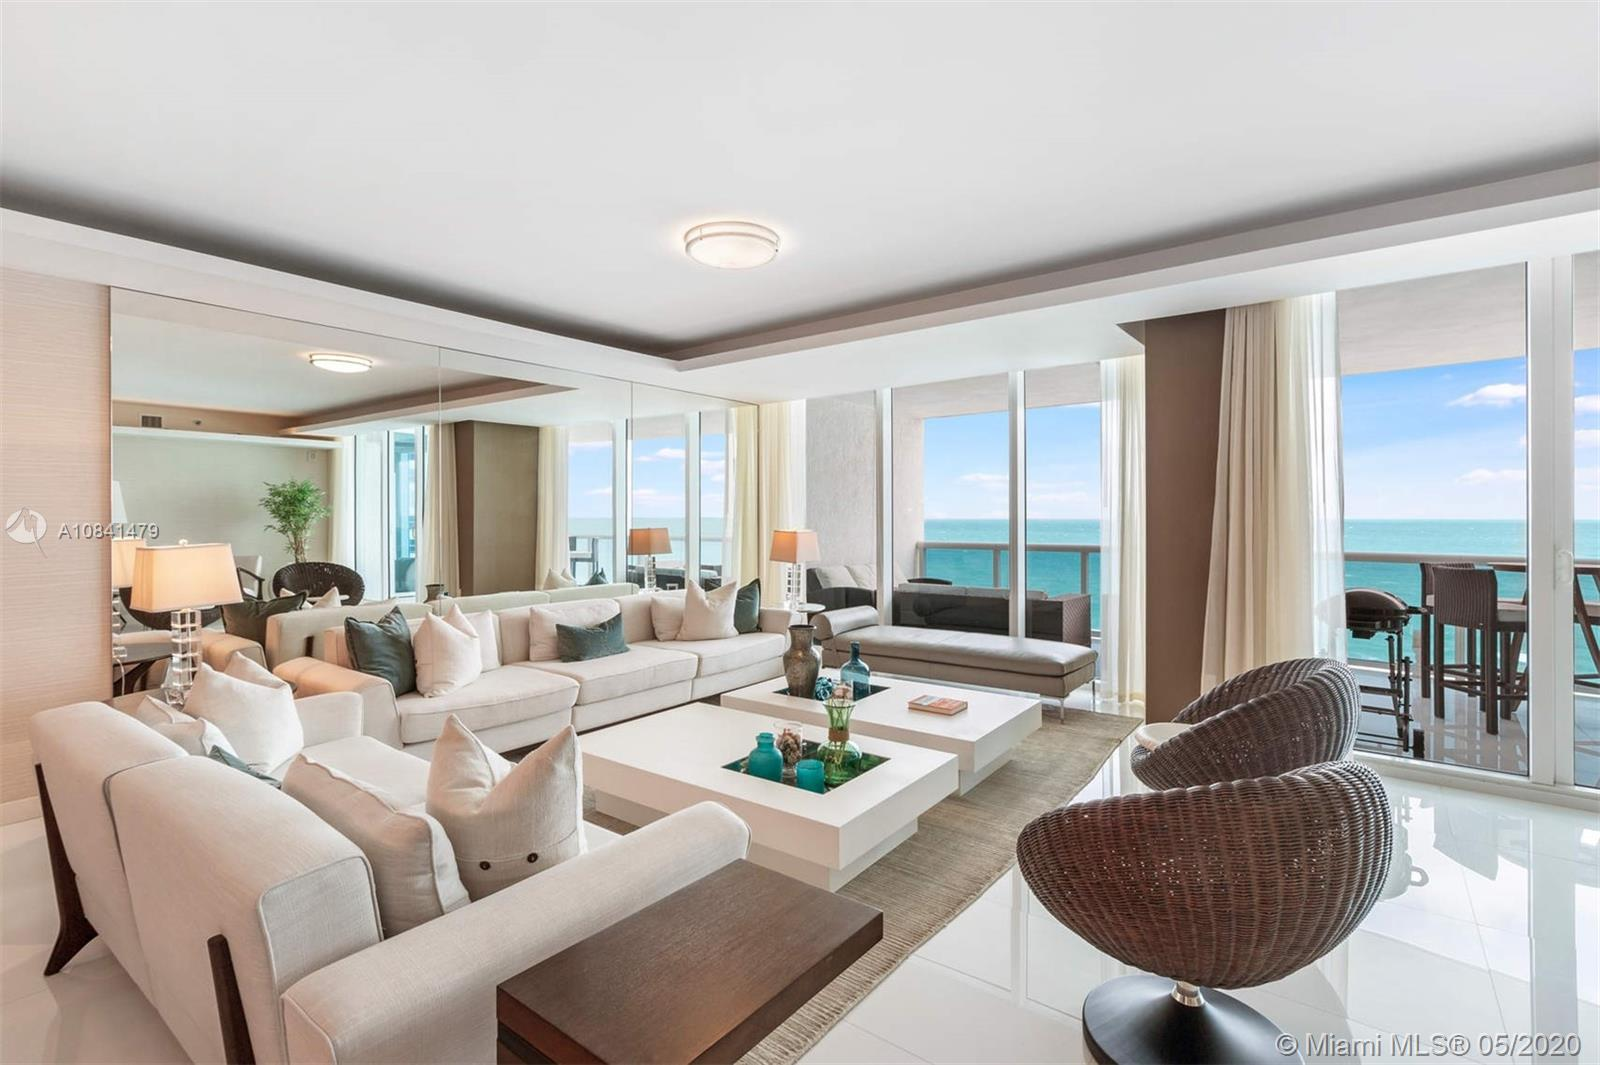 Amazing opportunity to acquire a turnkey residence at prestigious Trump Hollywood, an ocean front condominium that sits on 240 feet of pristine beach in Hollywood, Florida. This unique unit is flow thru with direct views of the ocean and the intracoastal, boasting 3395 sq ft of living area and two expansive balconies. It has been professionally decorated and is ready to move in. The spacious living space makes this unit especially comforting for either your new permanent home or your home away from home. The condominium also offers exceptional amenities such as beach and pool service, restaurant by the pool, 24 hour valet, gym, tennis courts, billiard, just to name a few.